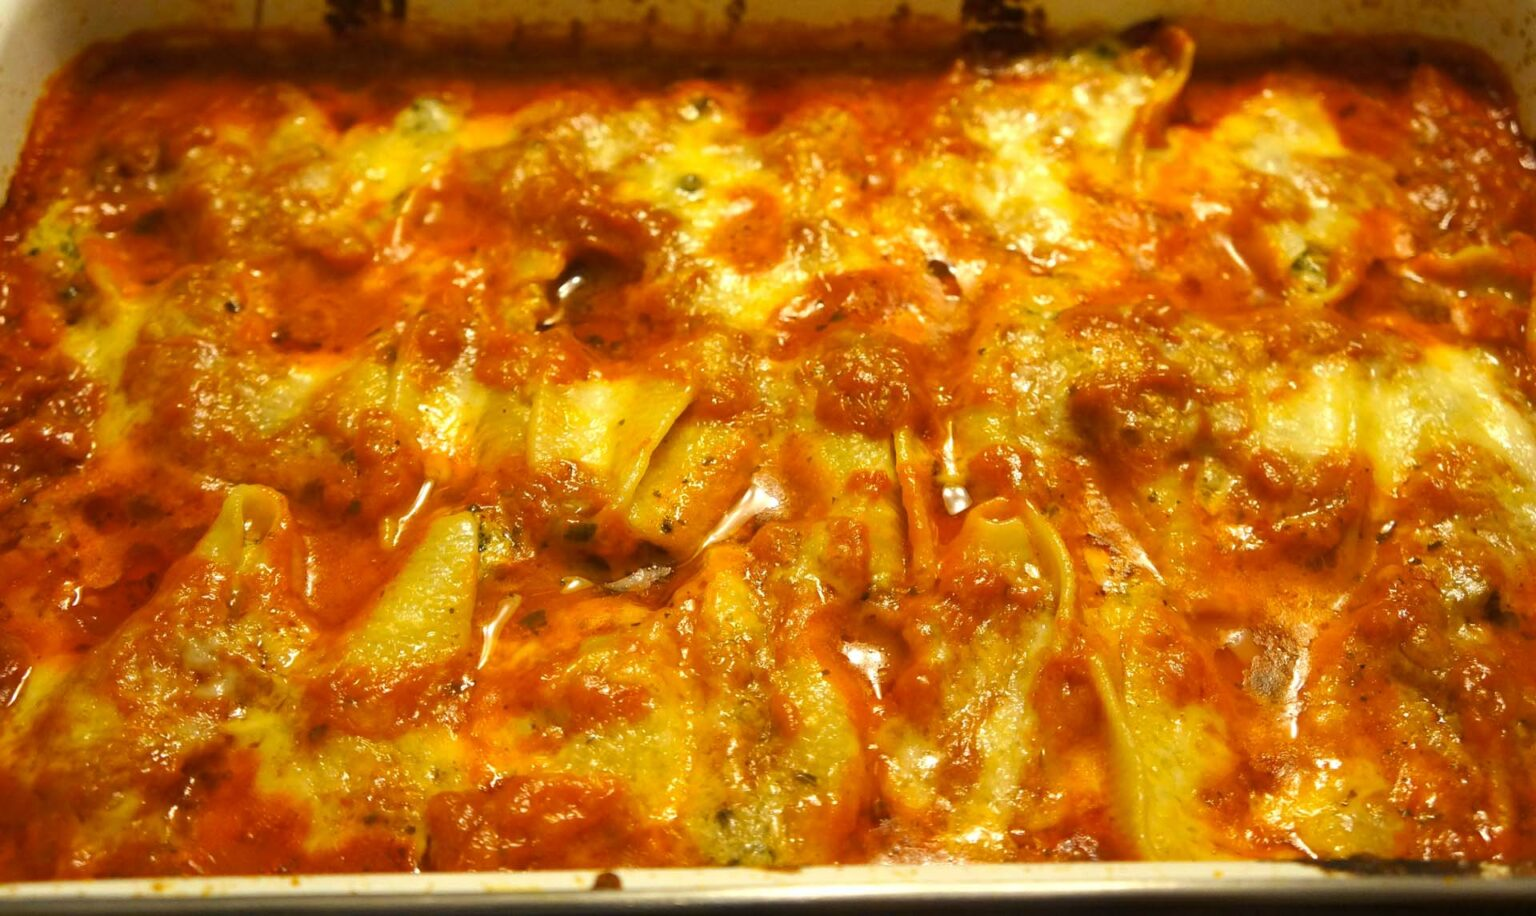 baked-stuffed-shells-with-portobello-mushrooms